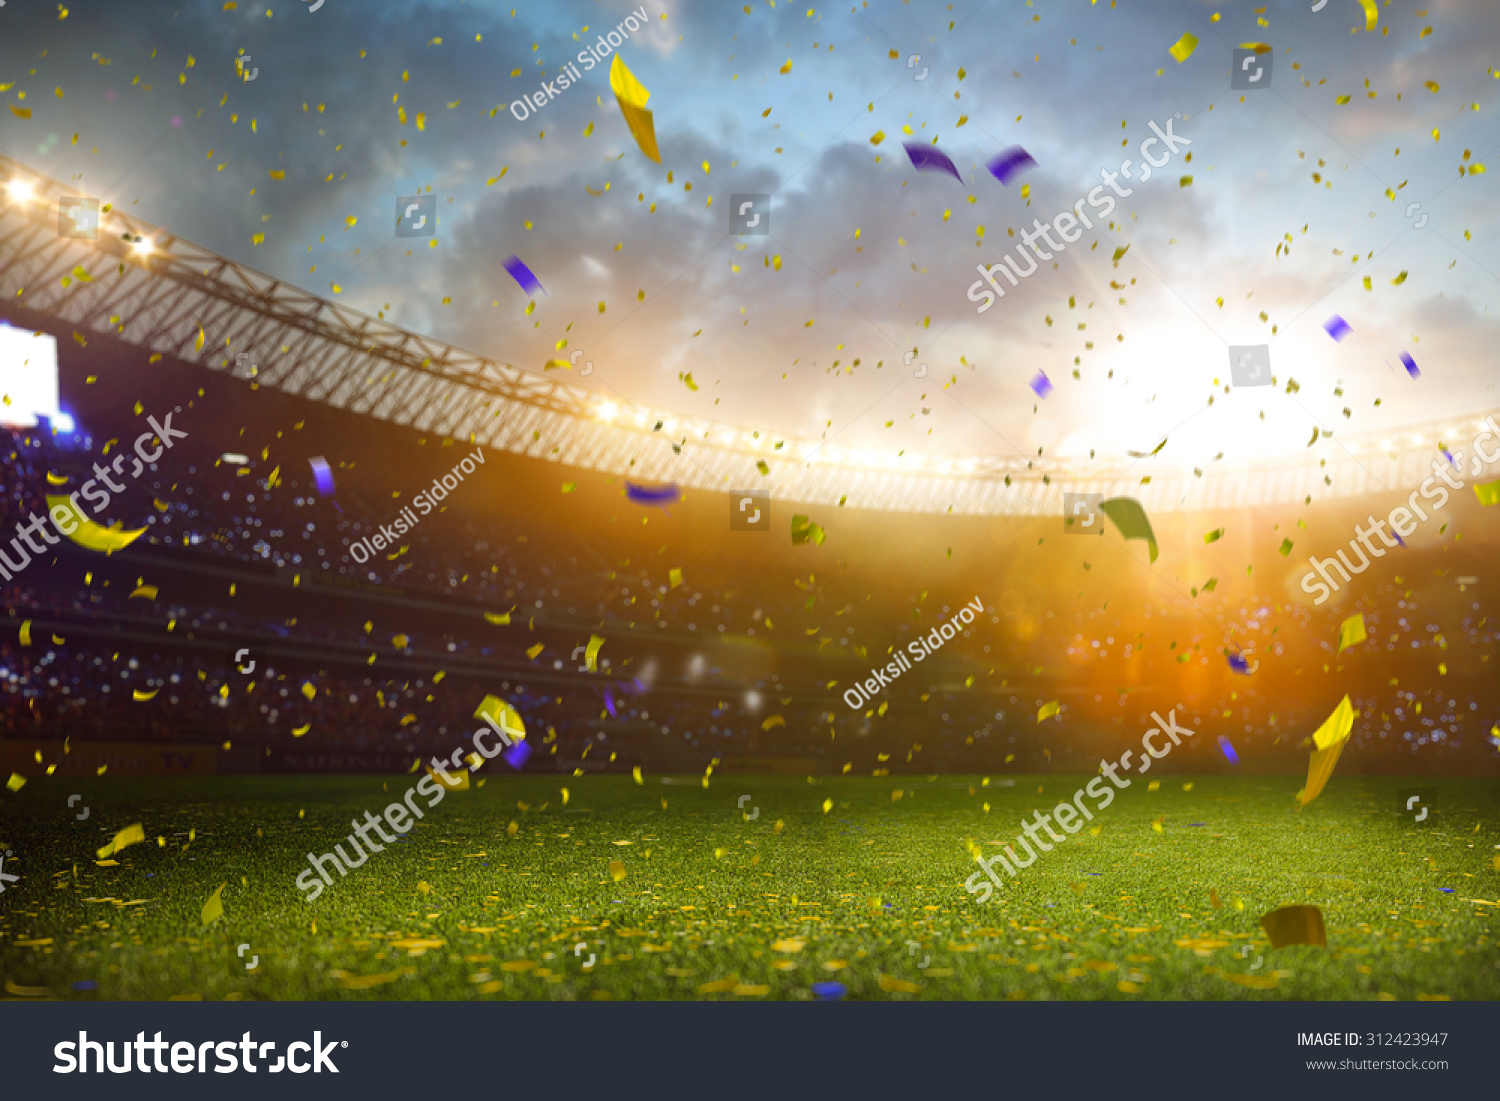 Evening stadium arena soccer field championship win! Confetti and tinsel . Yellow toning #312423947